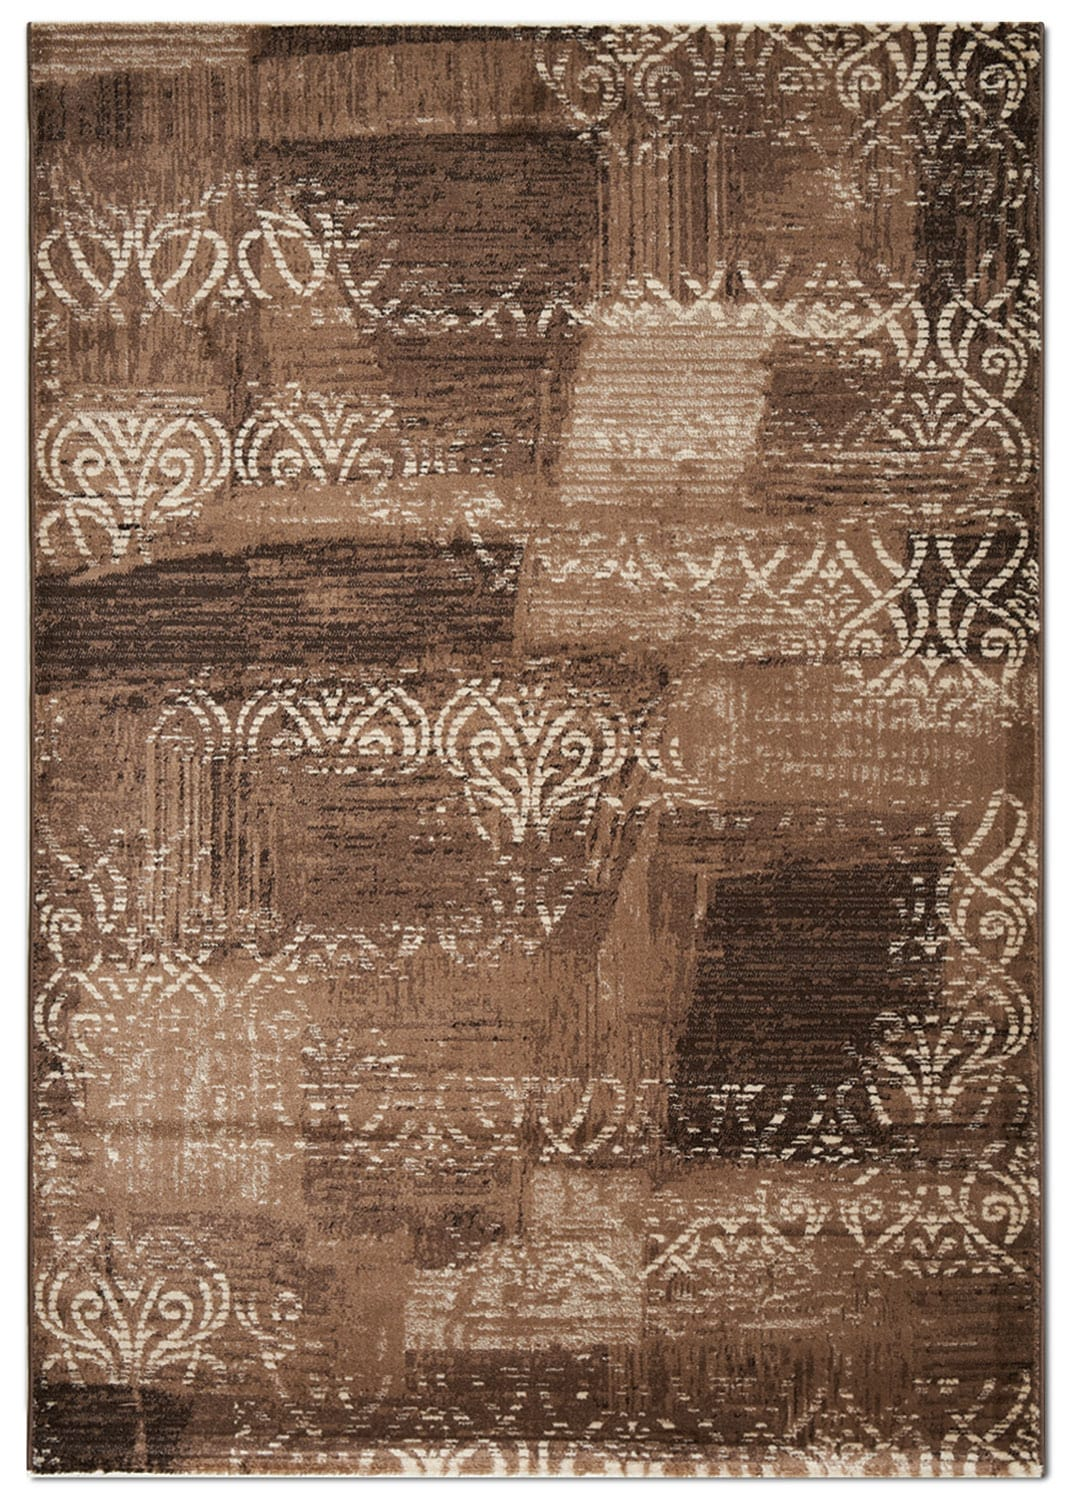 Empire 5' x 8' Area Rug - Brown